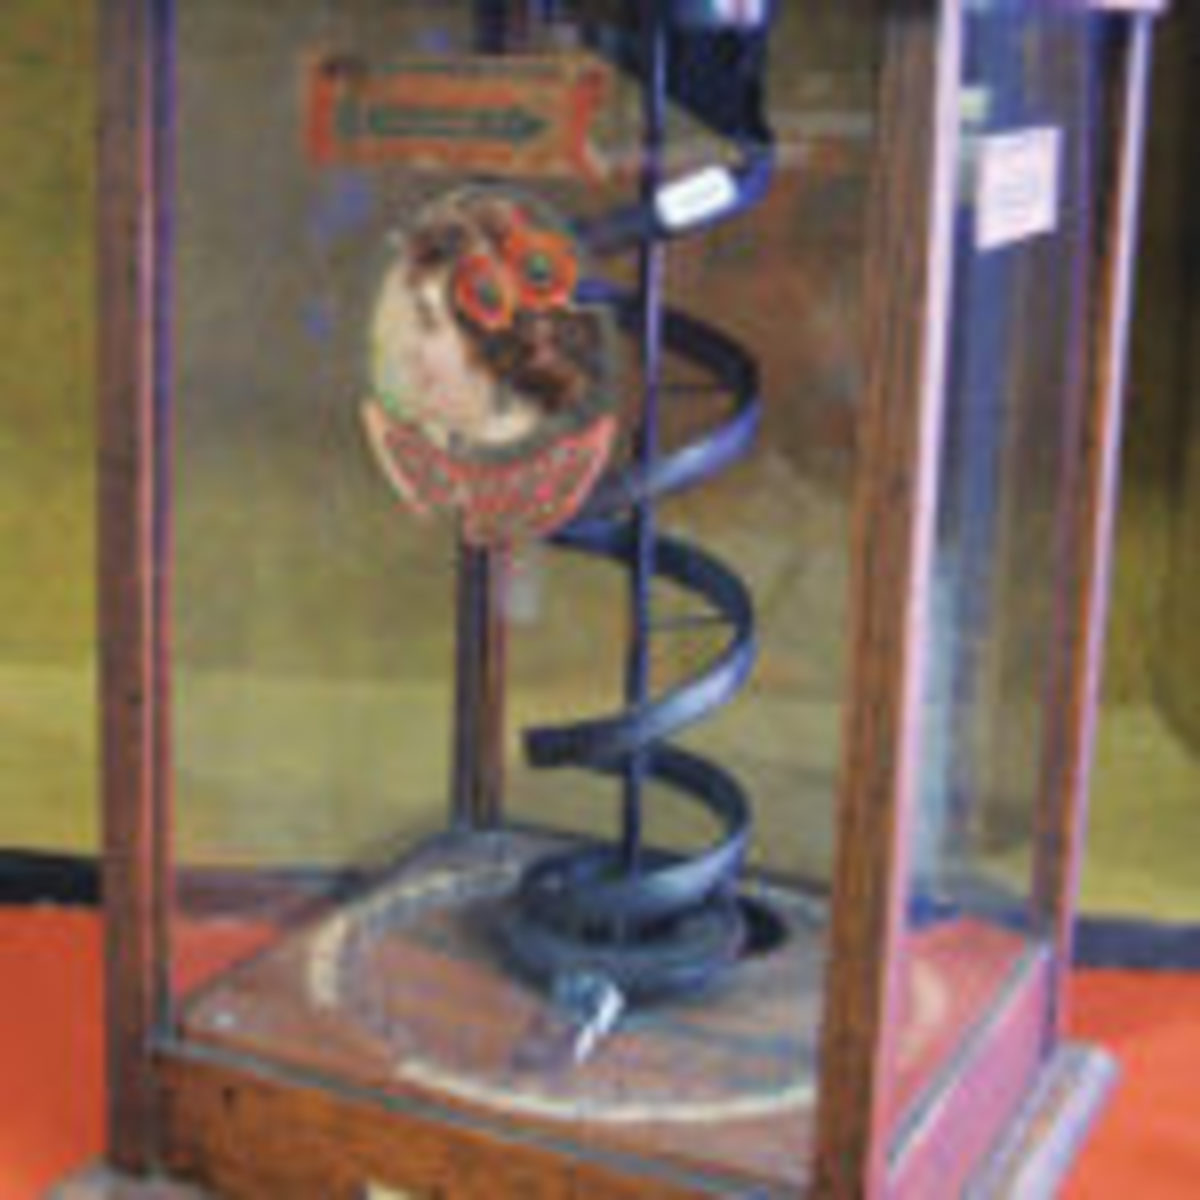 In the early 1900s you'd have a winner's choice of a cigar or stick of gum while playing the 20th Century Novelty Co., coin operated trade stimulator shown by Jack Freund, Springfield, Wisconsin. The 18-inch-tall gambling device was priced today at $2,100.